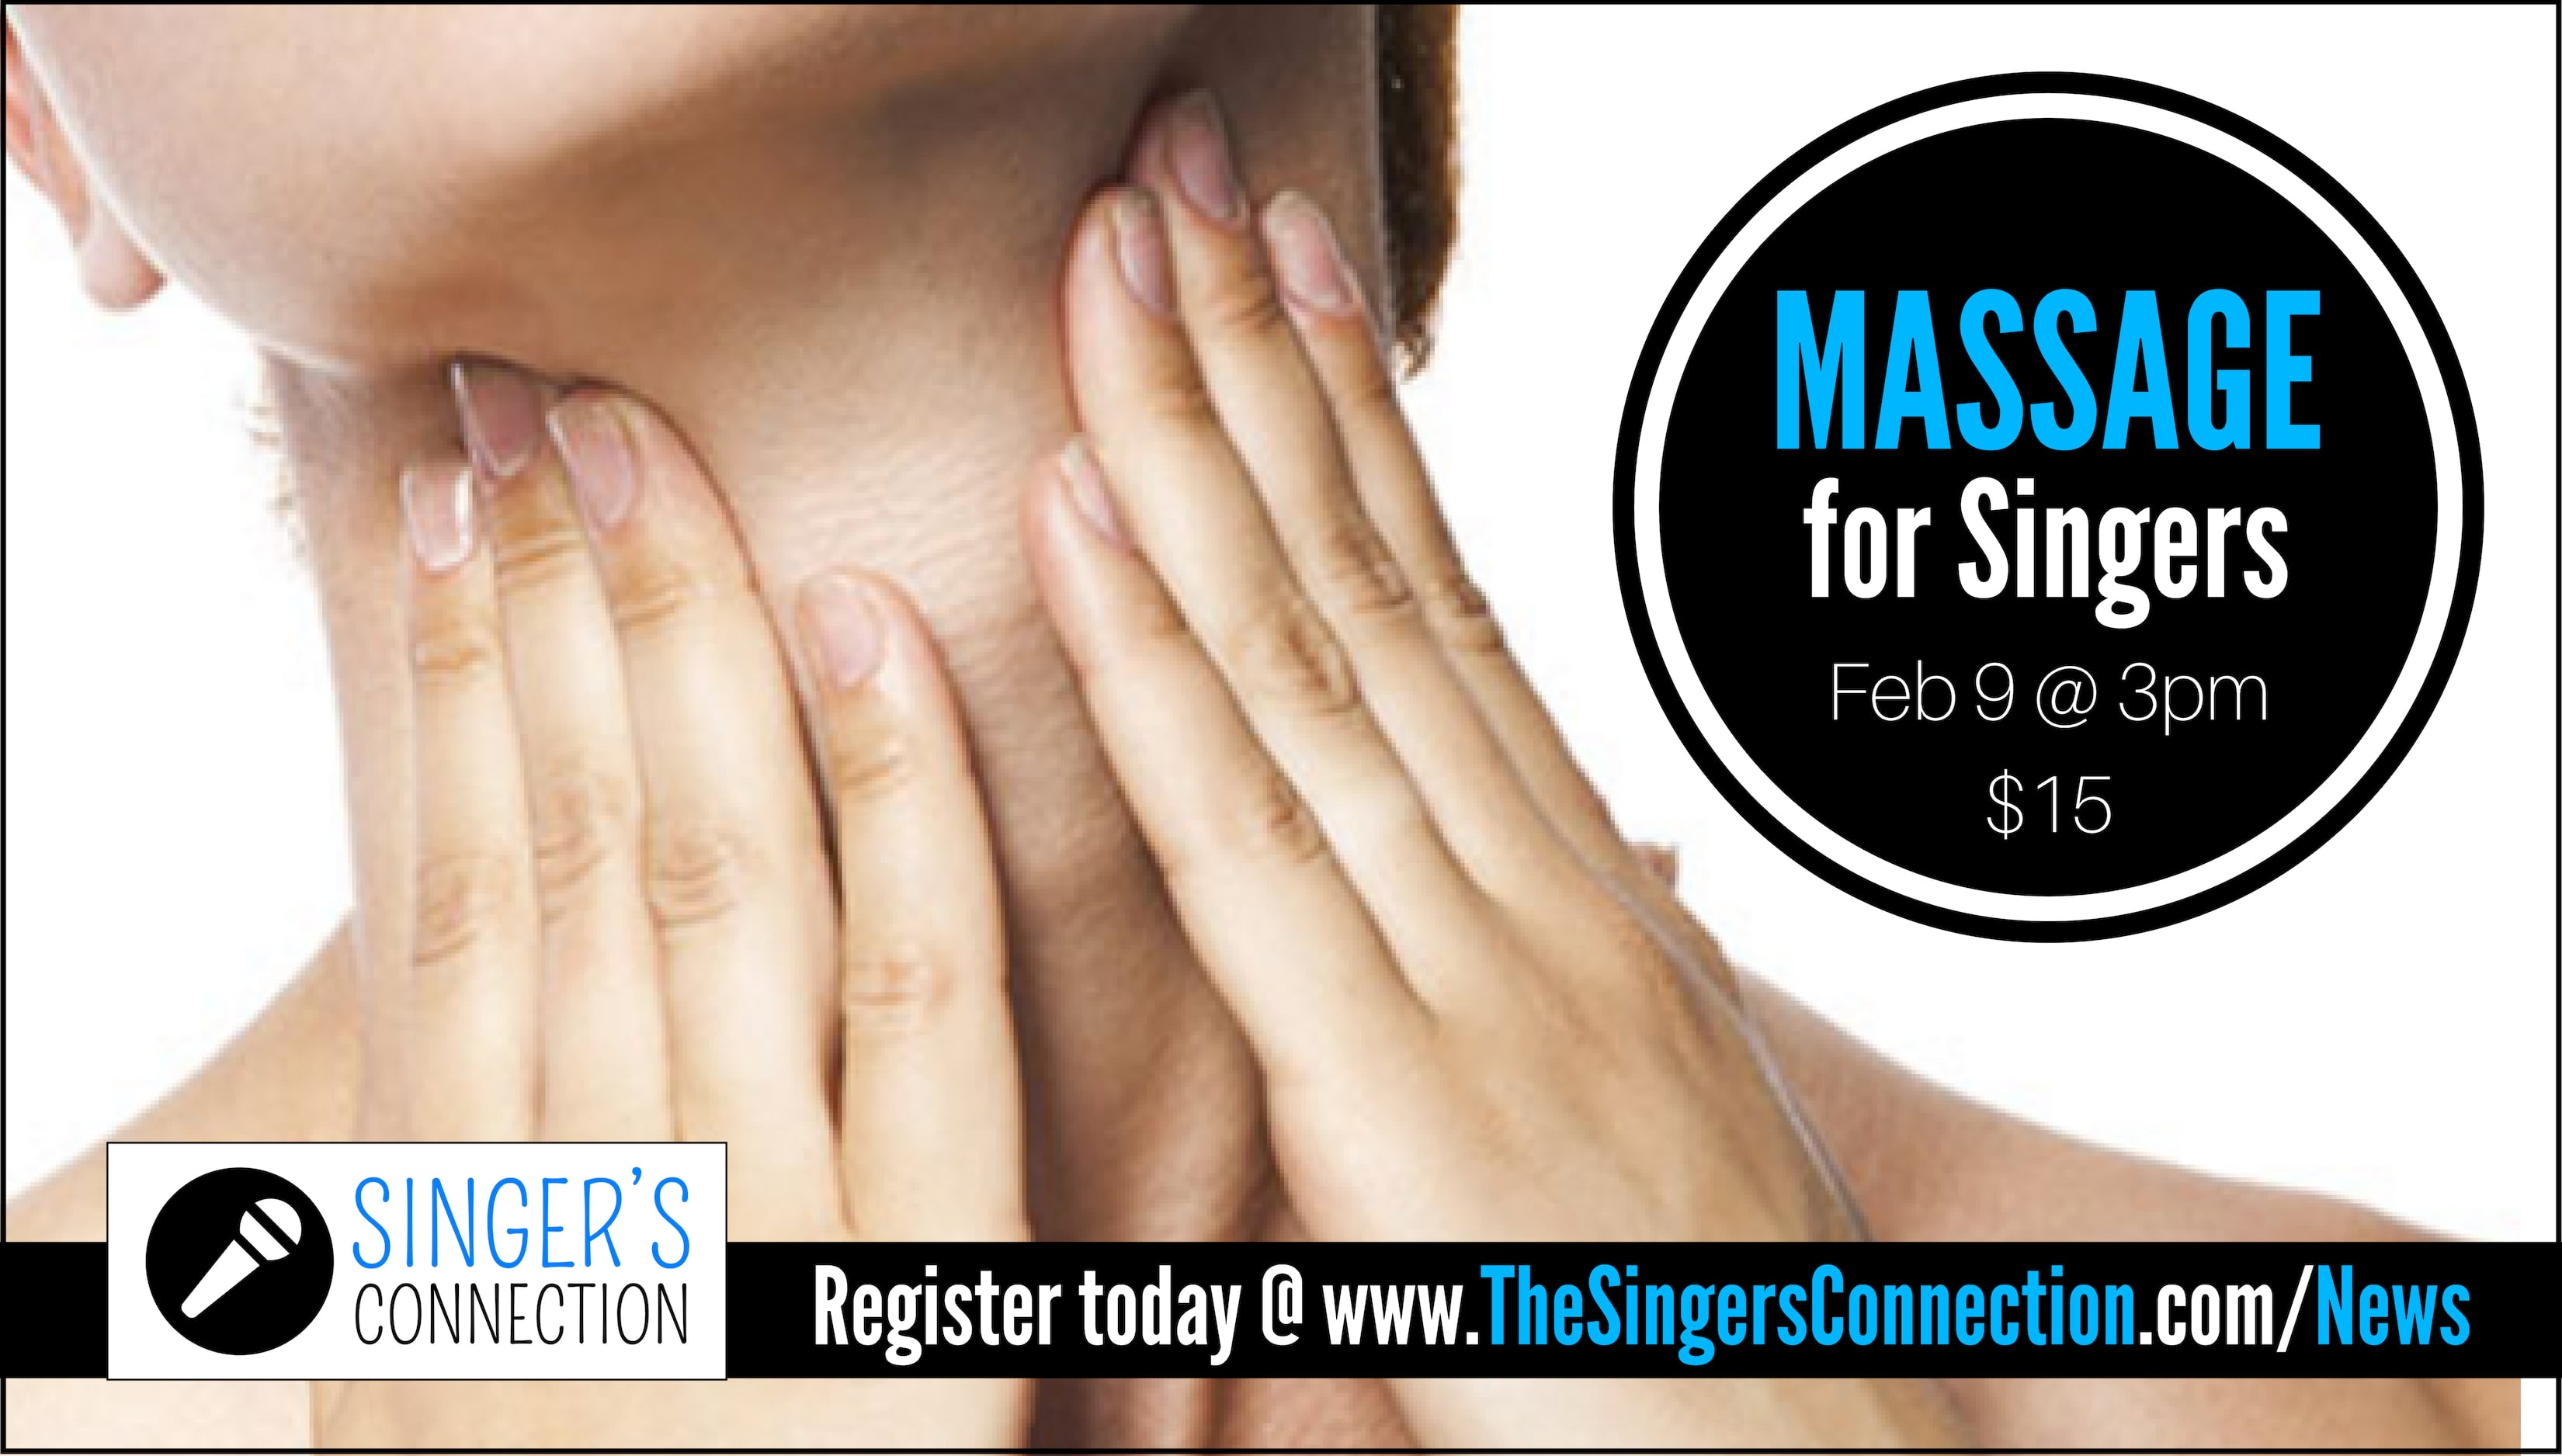 Massage for Singers!  Learn effective massage techniques and stretches to help alleviate tension in the jaw, tongue, throat, and larynx in this AWESOME singing workshops!  Register today!